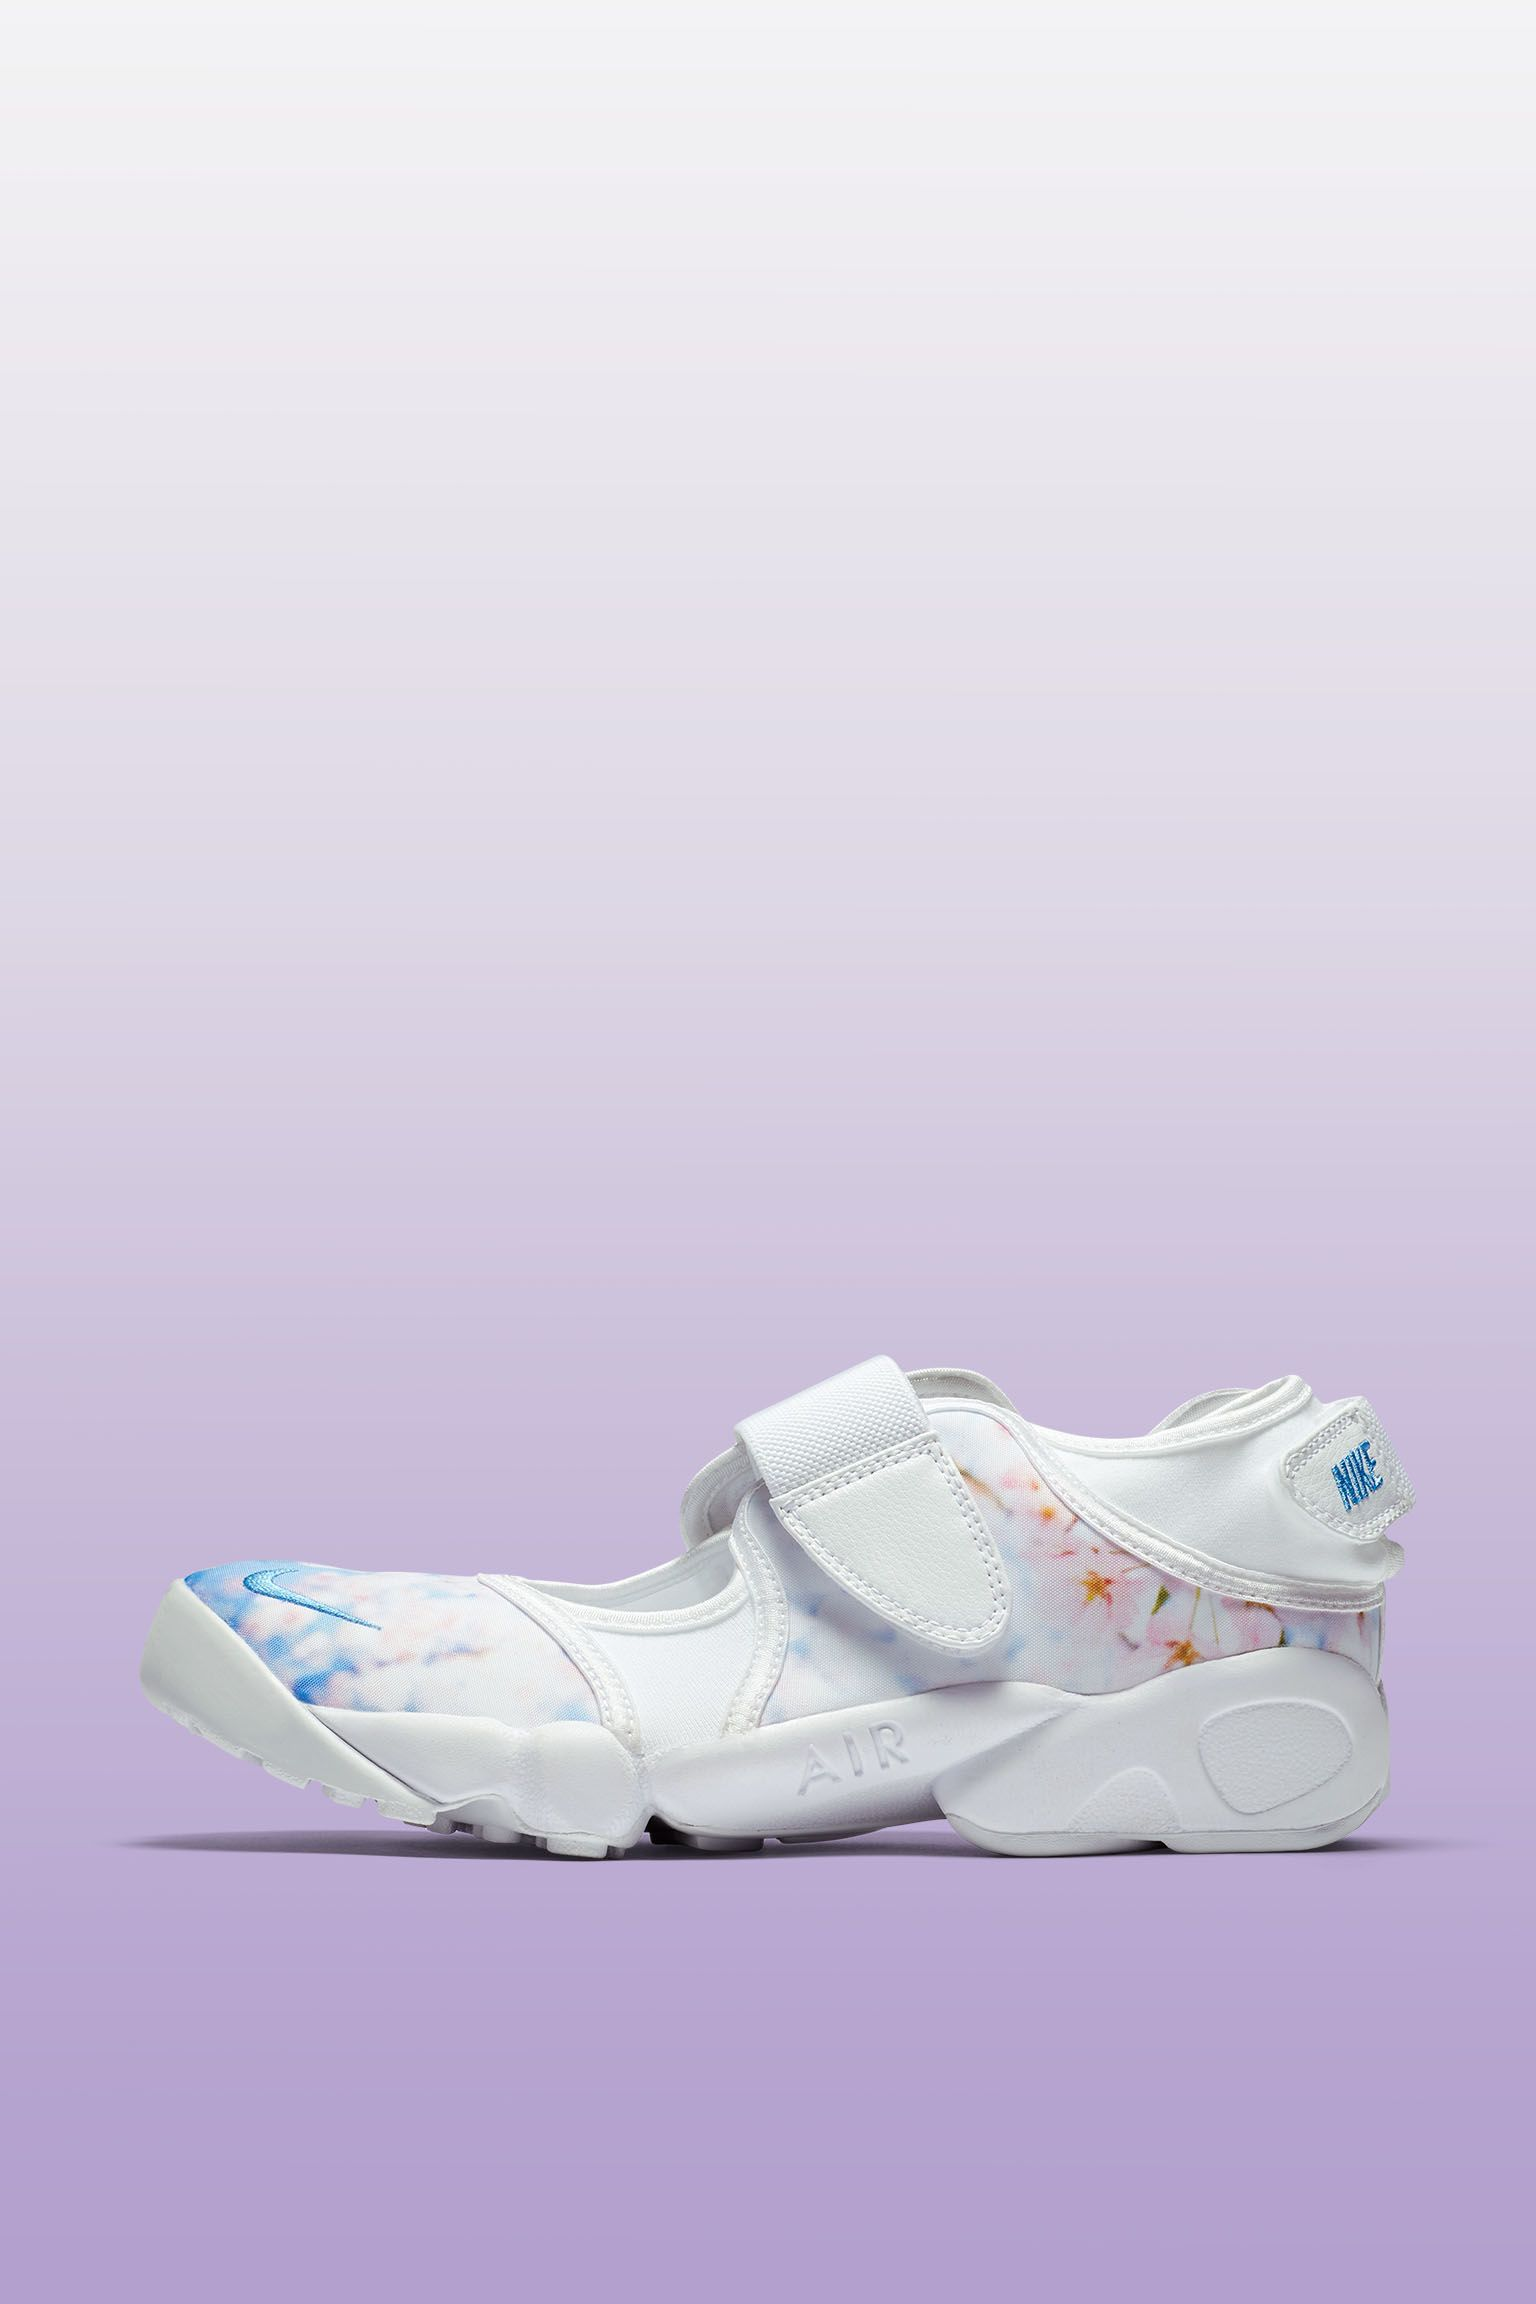 Women's Nike Air Rift 'Cherry Blossom'